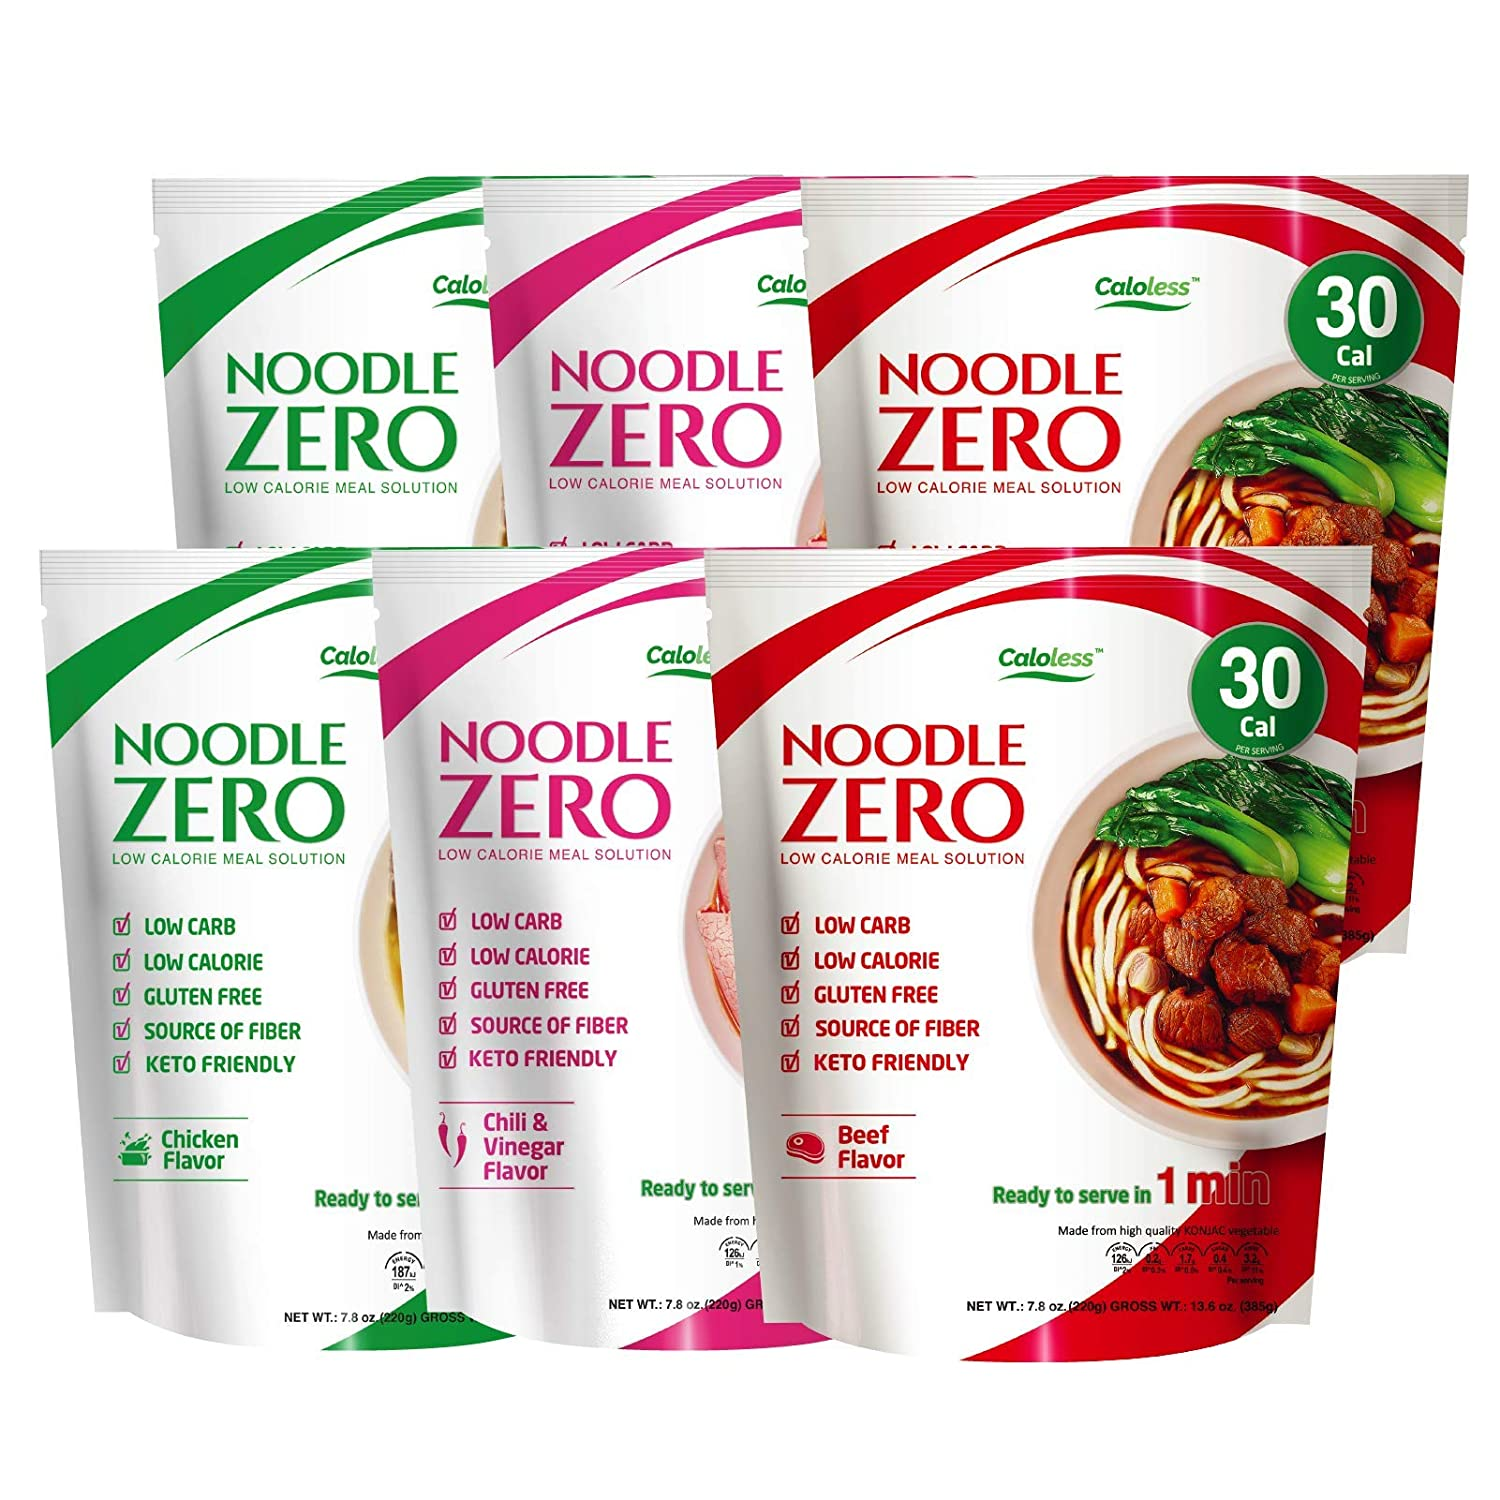 Caloless Konjac Shirataki Noodles 6-Pack Low Calorie Healthy Food Weight Loss (Chicken/Beef/chilli)-Gluten Free, Keto Snacks, Non Gmo, Low Carbs Glucomannan Diabetic Miracle Noodle Pasta Flavor Variety Pack